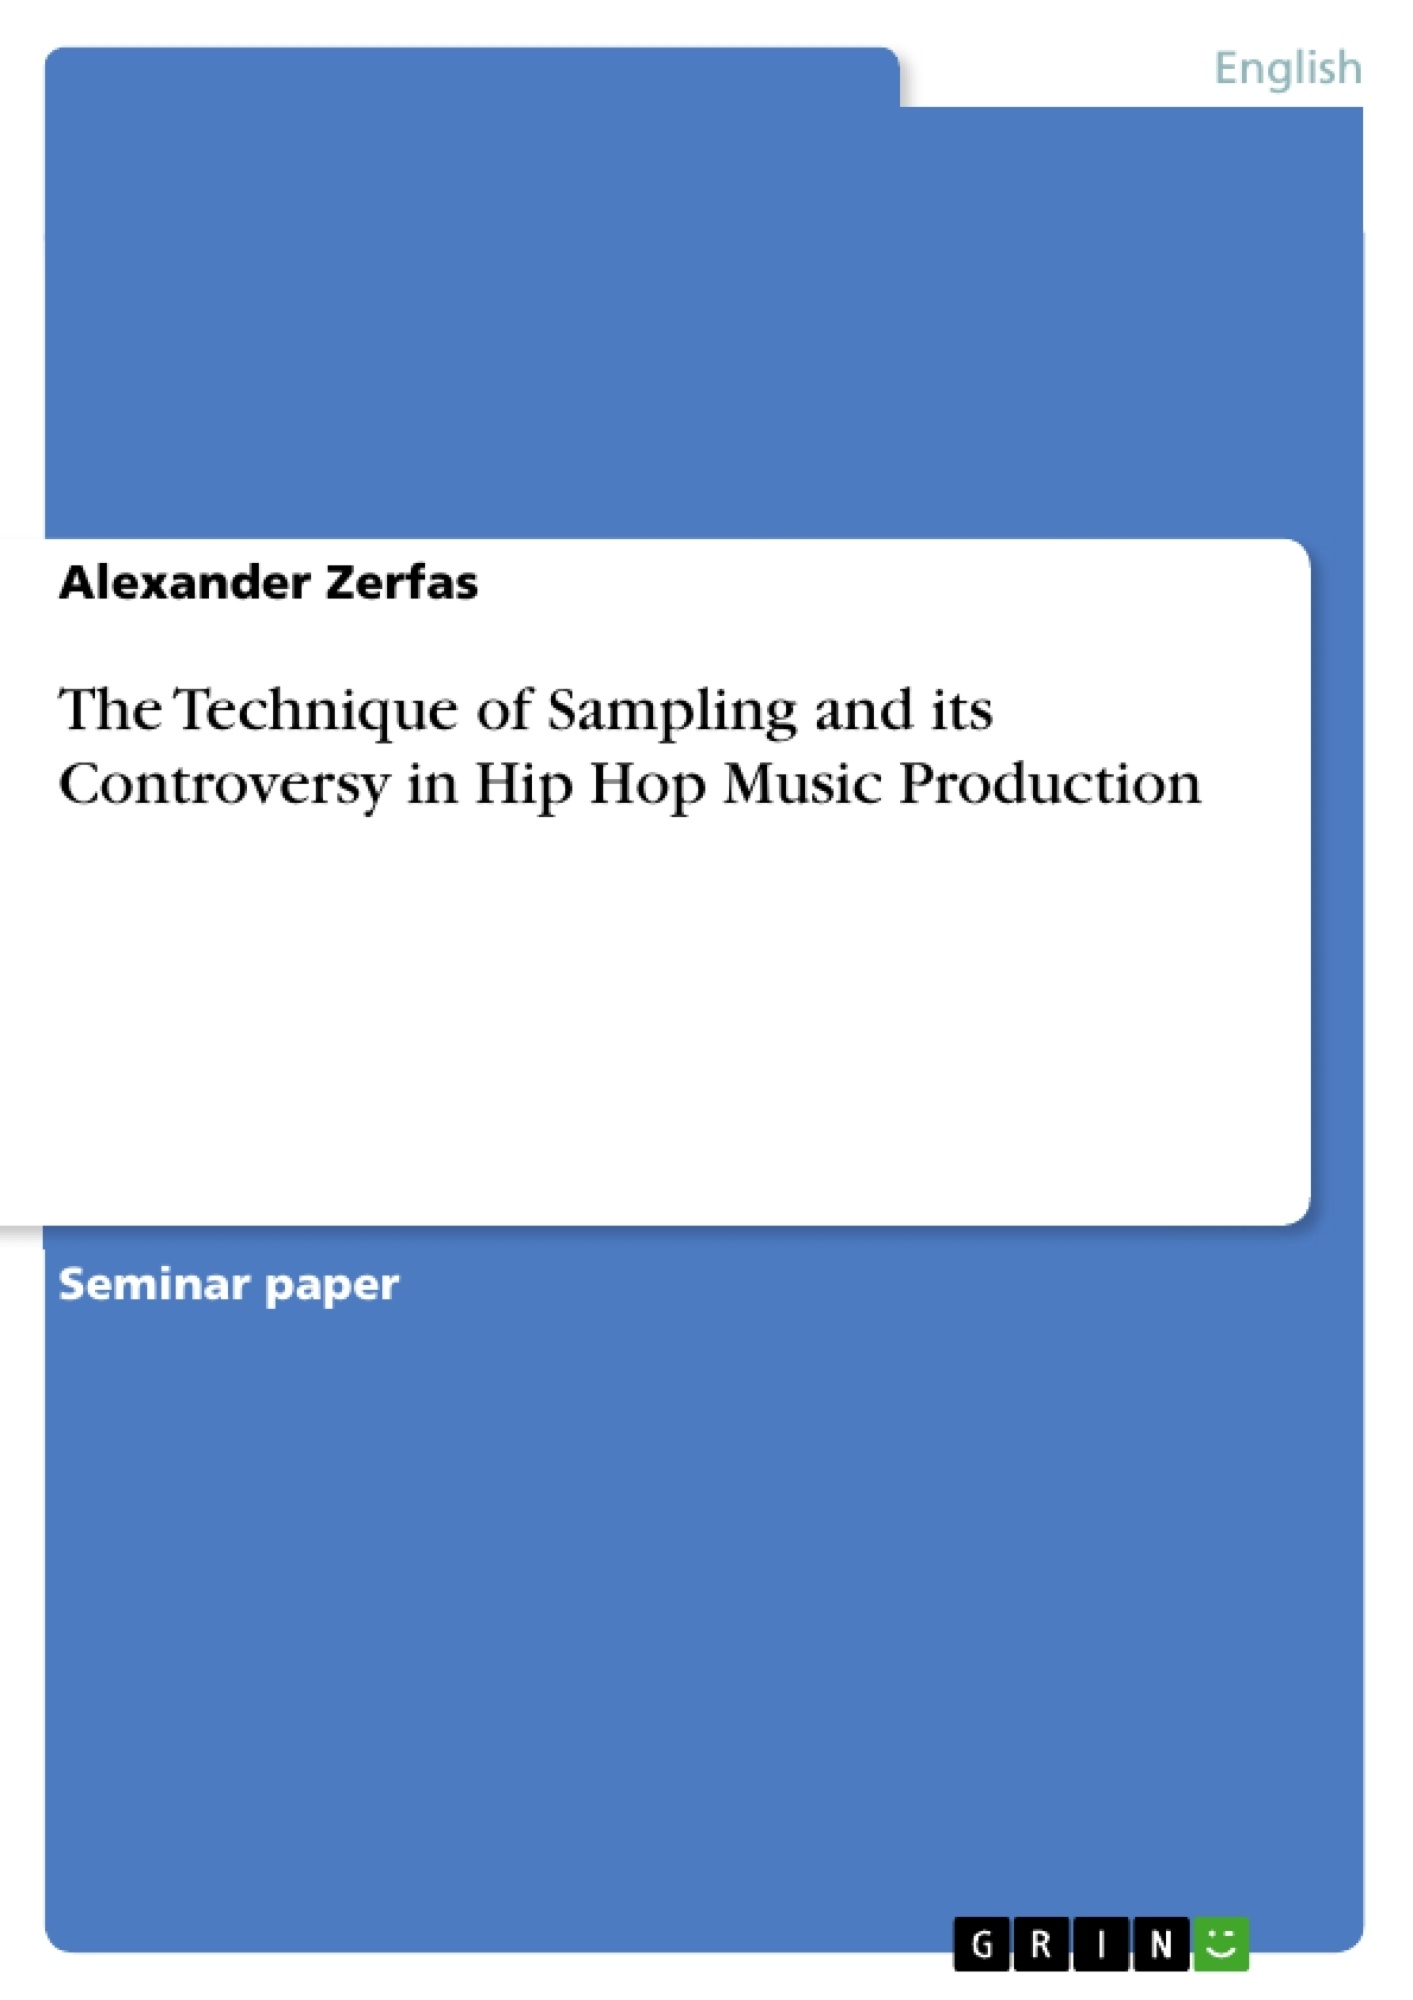 Title: The Technique of Sampling and its Controversy in Hip Hop Music Production